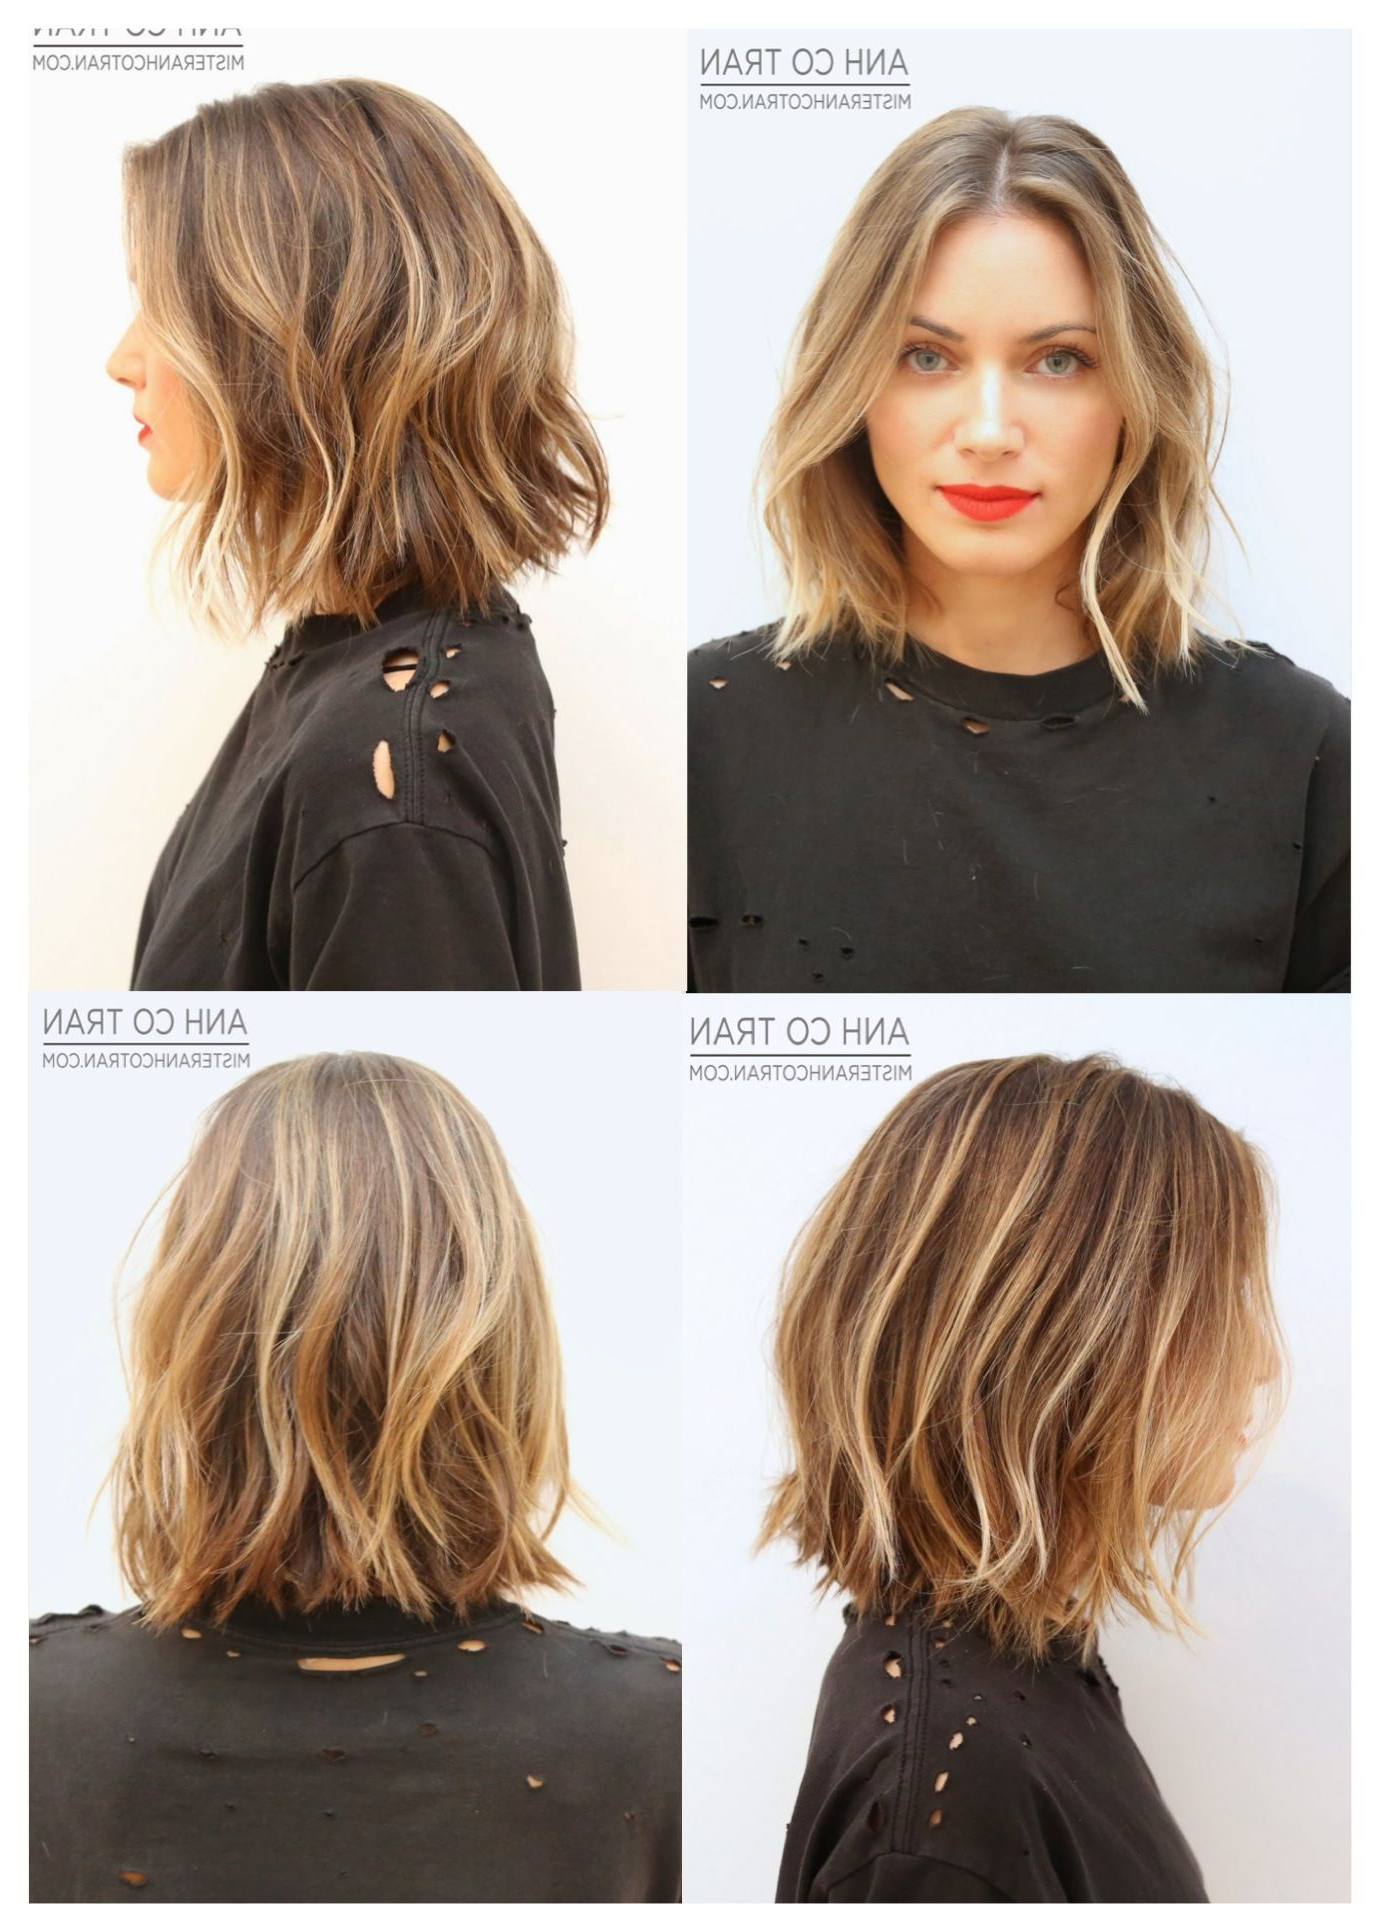 Most Current Full Tousled Layers Hairstyles Intended For Short Tousled Hair (View 10 of 20)